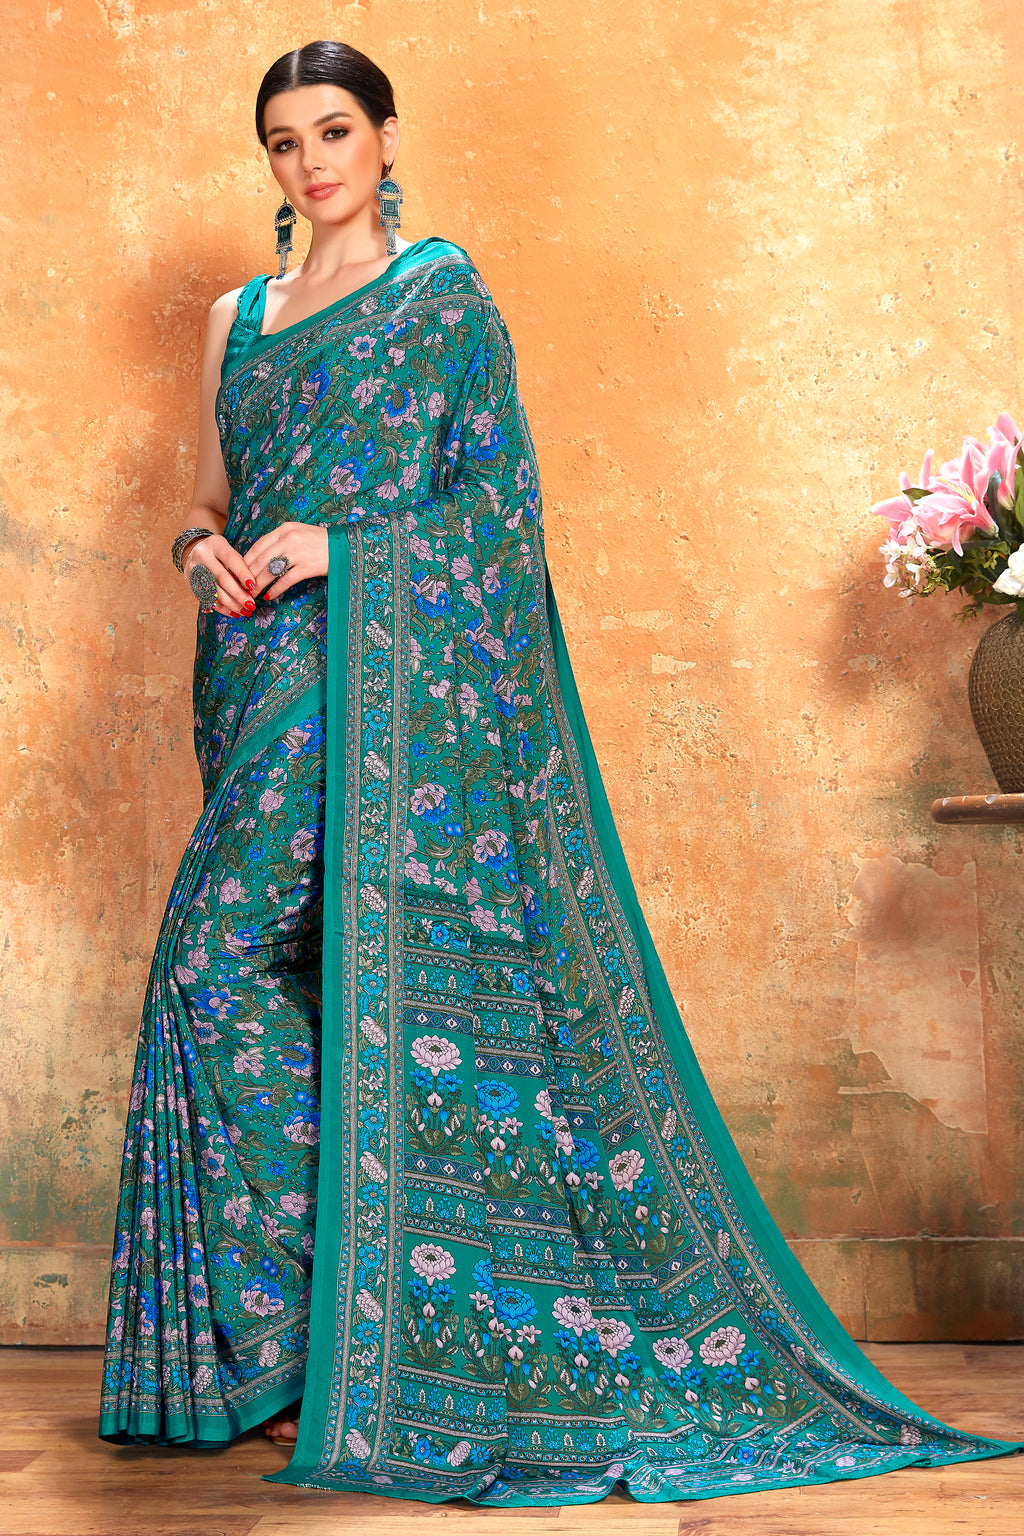 Rama Blue Color Crepe  Kitty Party Sarees NYF-8062